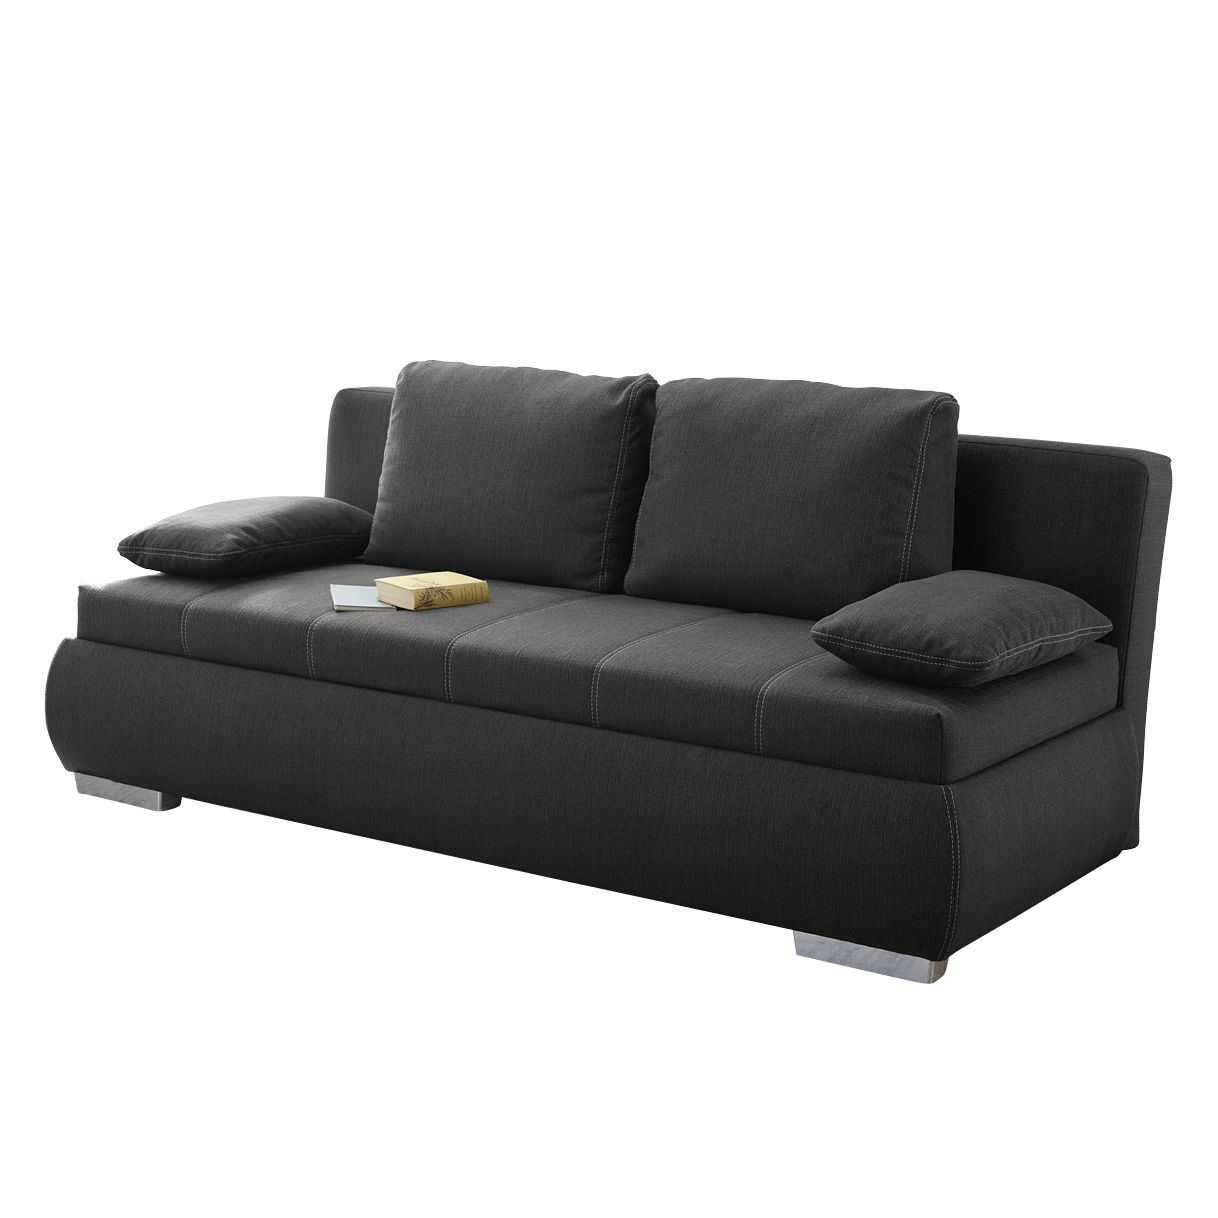 boxspring schlafsofa madang webstoff anthrazit fredriks g nstig online kaufen. Black Bedroom Furniture Sets. Home Design Ideas